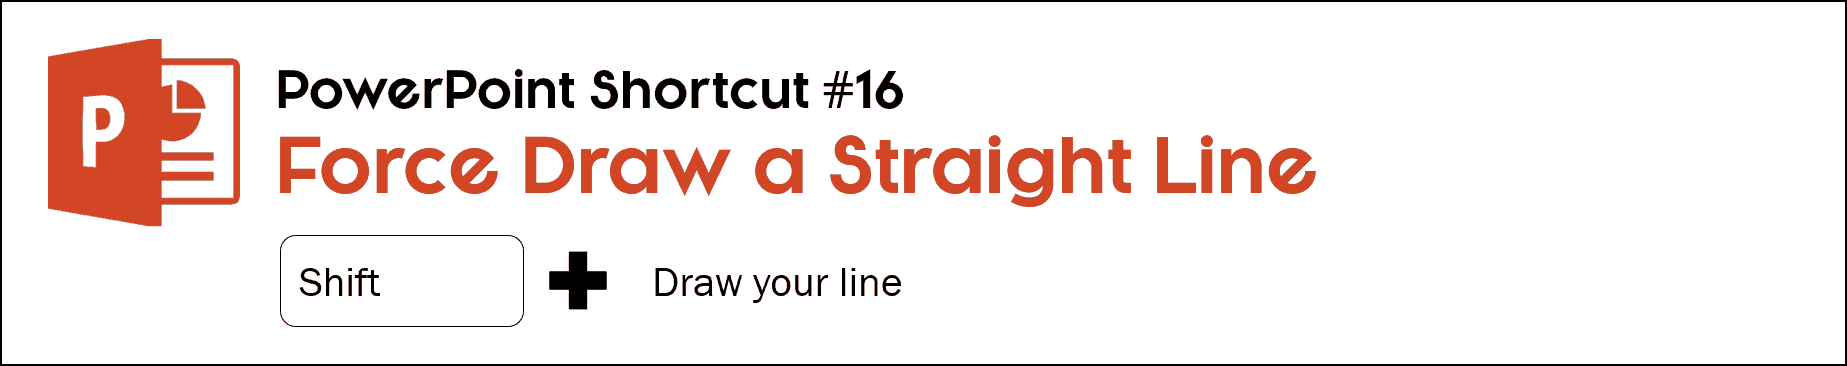 To force draw a straight line in PowerPoint, hold the shift key down while inserting the line onto your slide